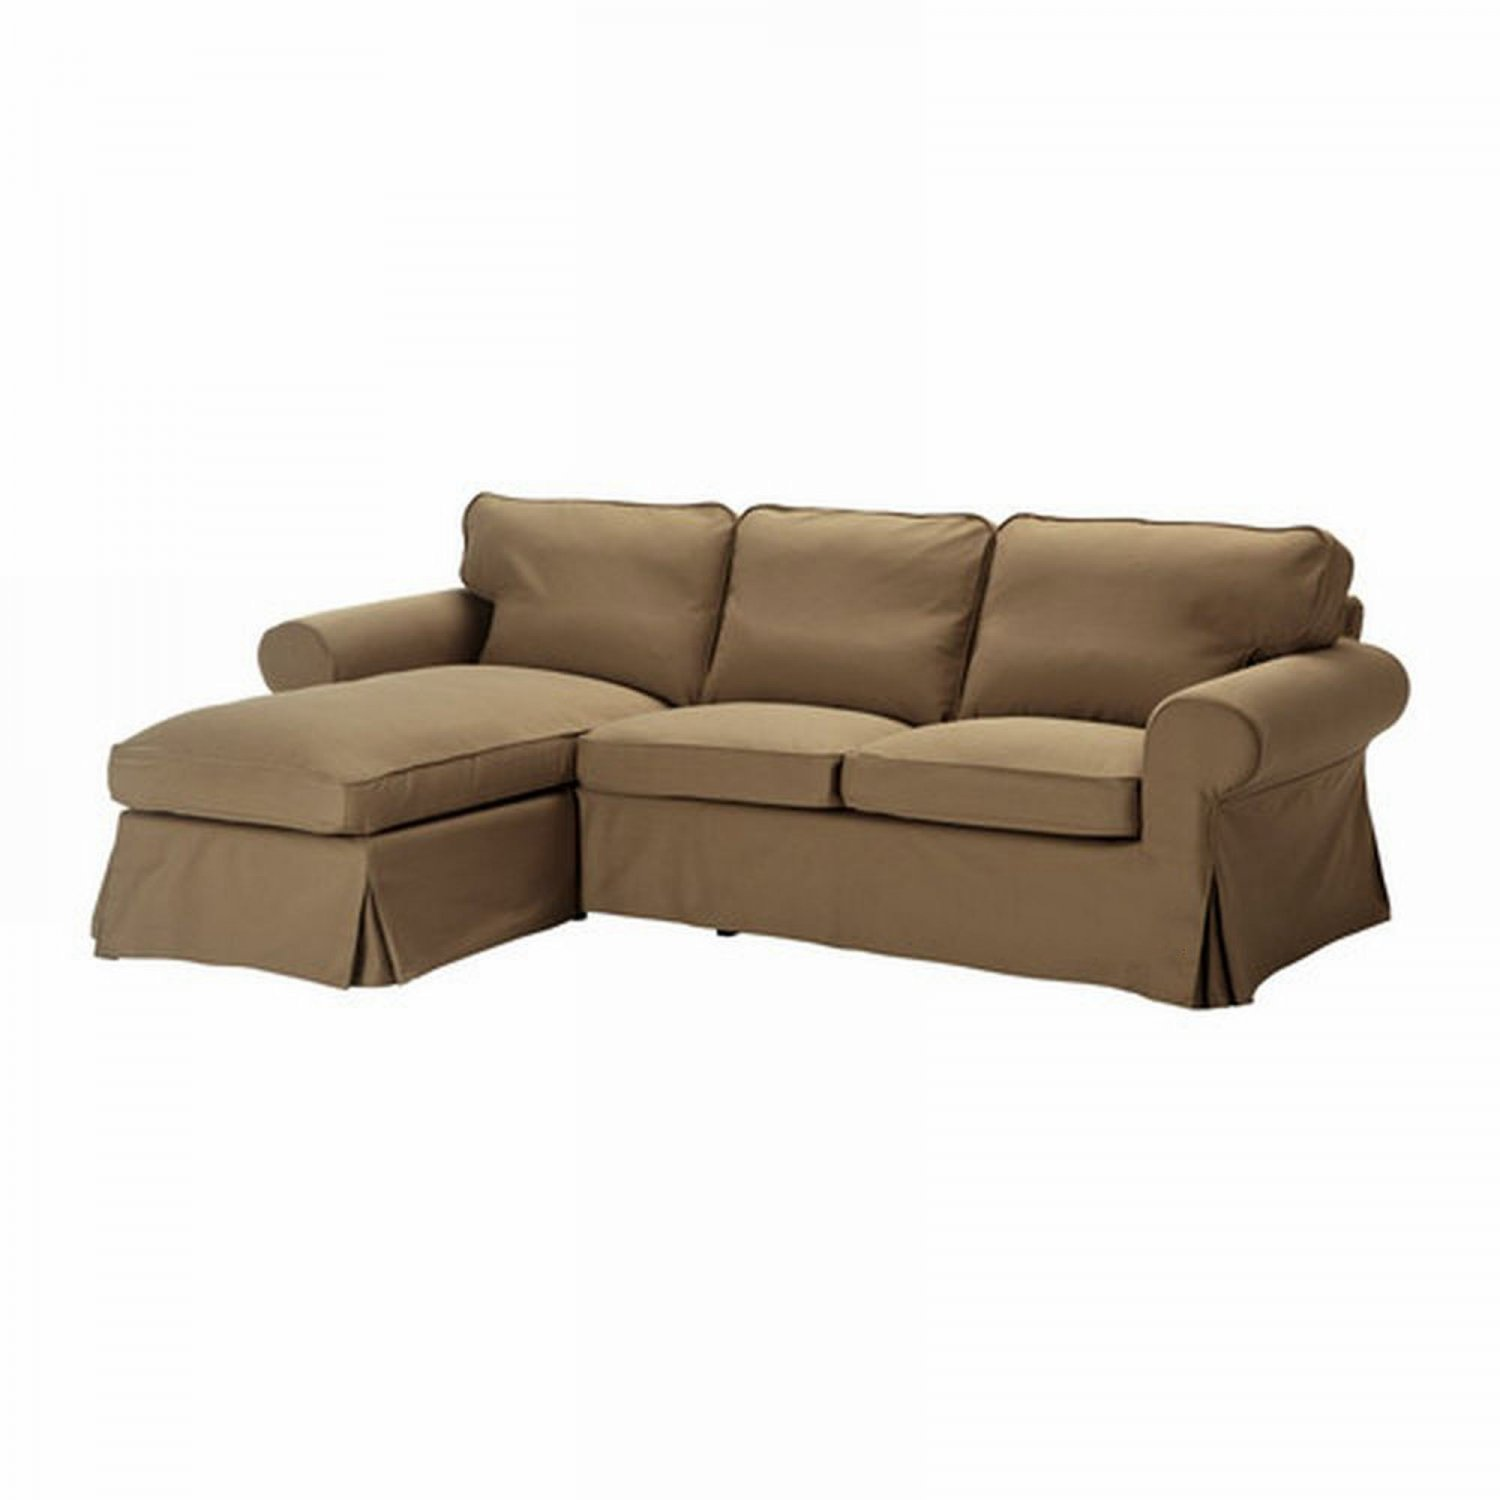 ikea ektorp loveseat sofa with chaise cover slipcover idemo light brown cotton. Black Bedroom Furniture Sets. Home Design Ideas